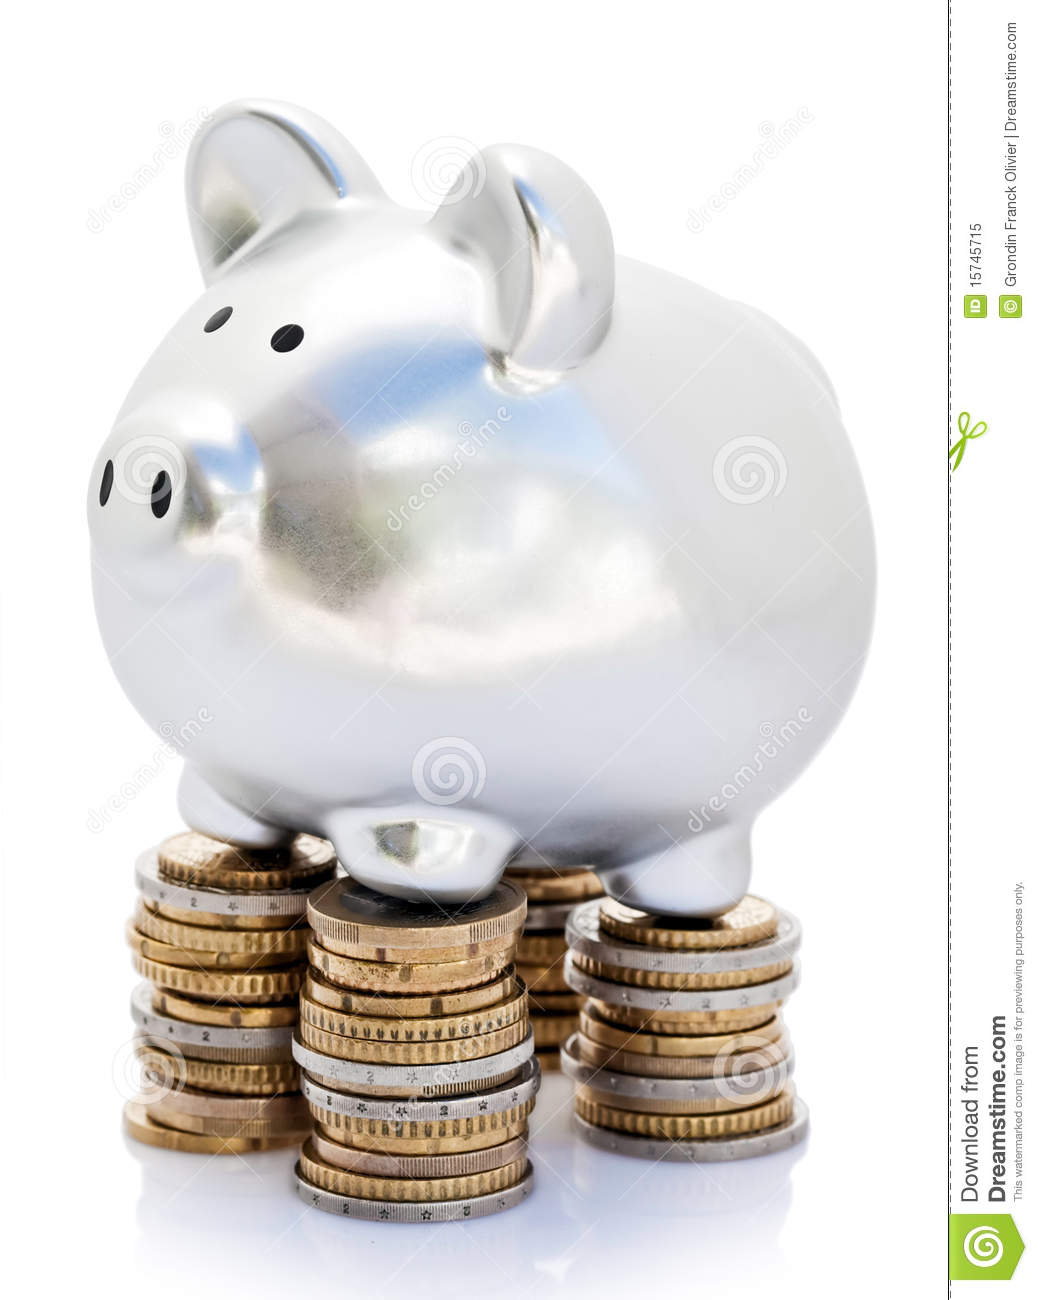 Piggy Bank On Coins Stock Image Image Of Standing Piles